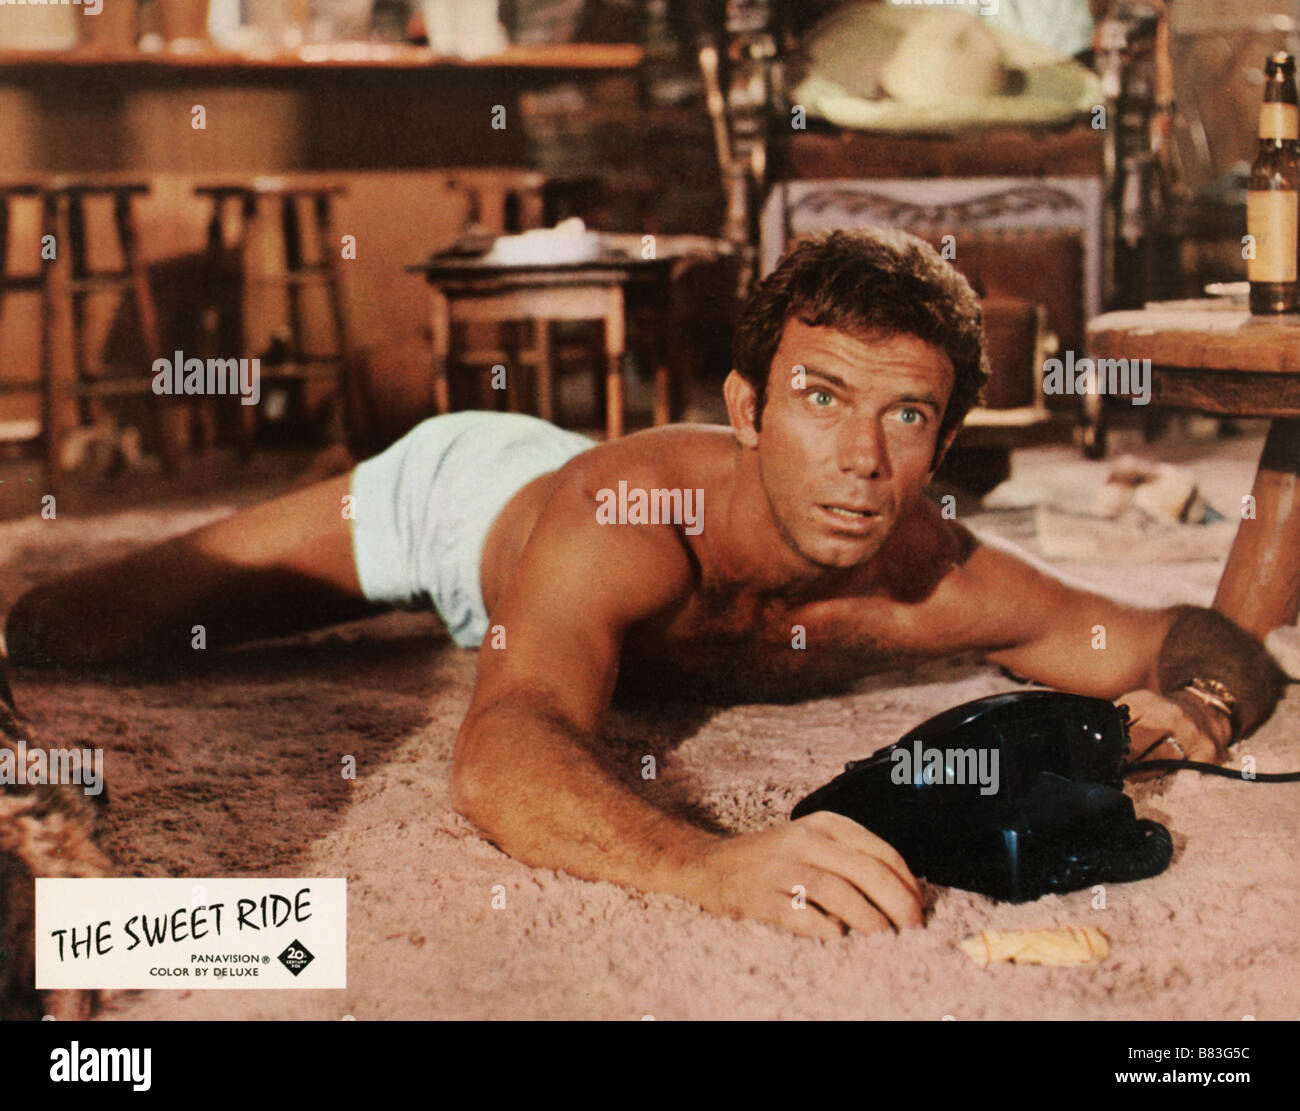 anthony franciosa filmographyanthony franciosa wikipedia, anthony franciosa, anthony franciosa net worth, anthony franciosa imdb, anthony franciosa filmography, anthony franciosa grave, anthony franciosa shelley winters, anthony franciosa and rita thiel, anthony franciosa shirtless, anthony franciosa grimsby, anthony franciosa attore, anthony franciosa married, anthony franciosa temper, anthony franciosa tv series, anthony franciosa facebook, anthony franciosa biografia